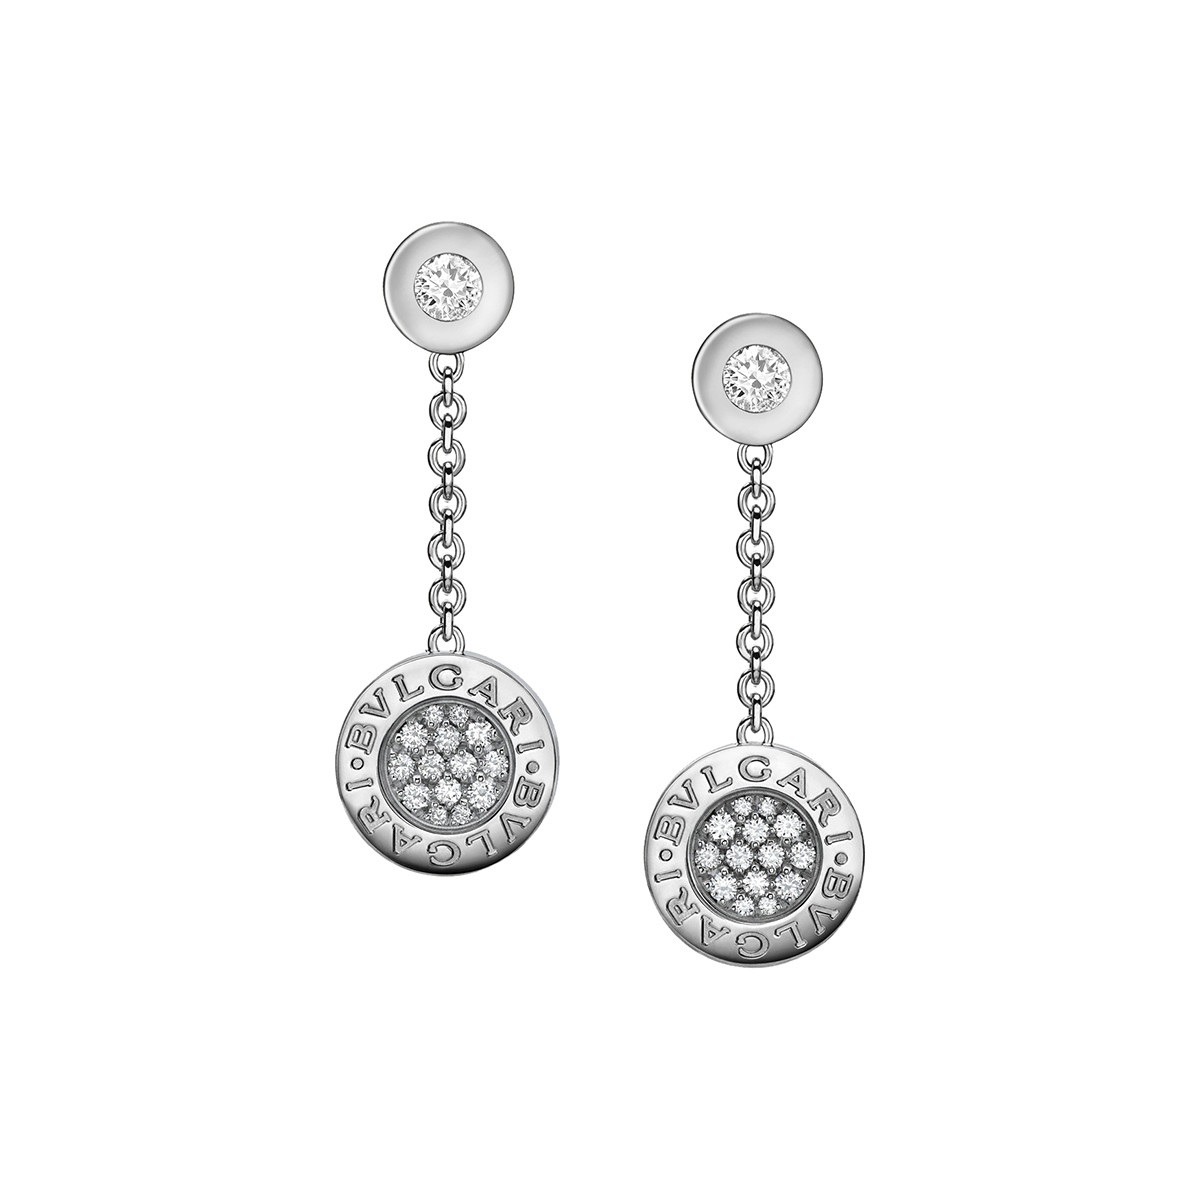 "Pavé Diamond ""Bvlgari-Bvlgari"" Drop Earrings"